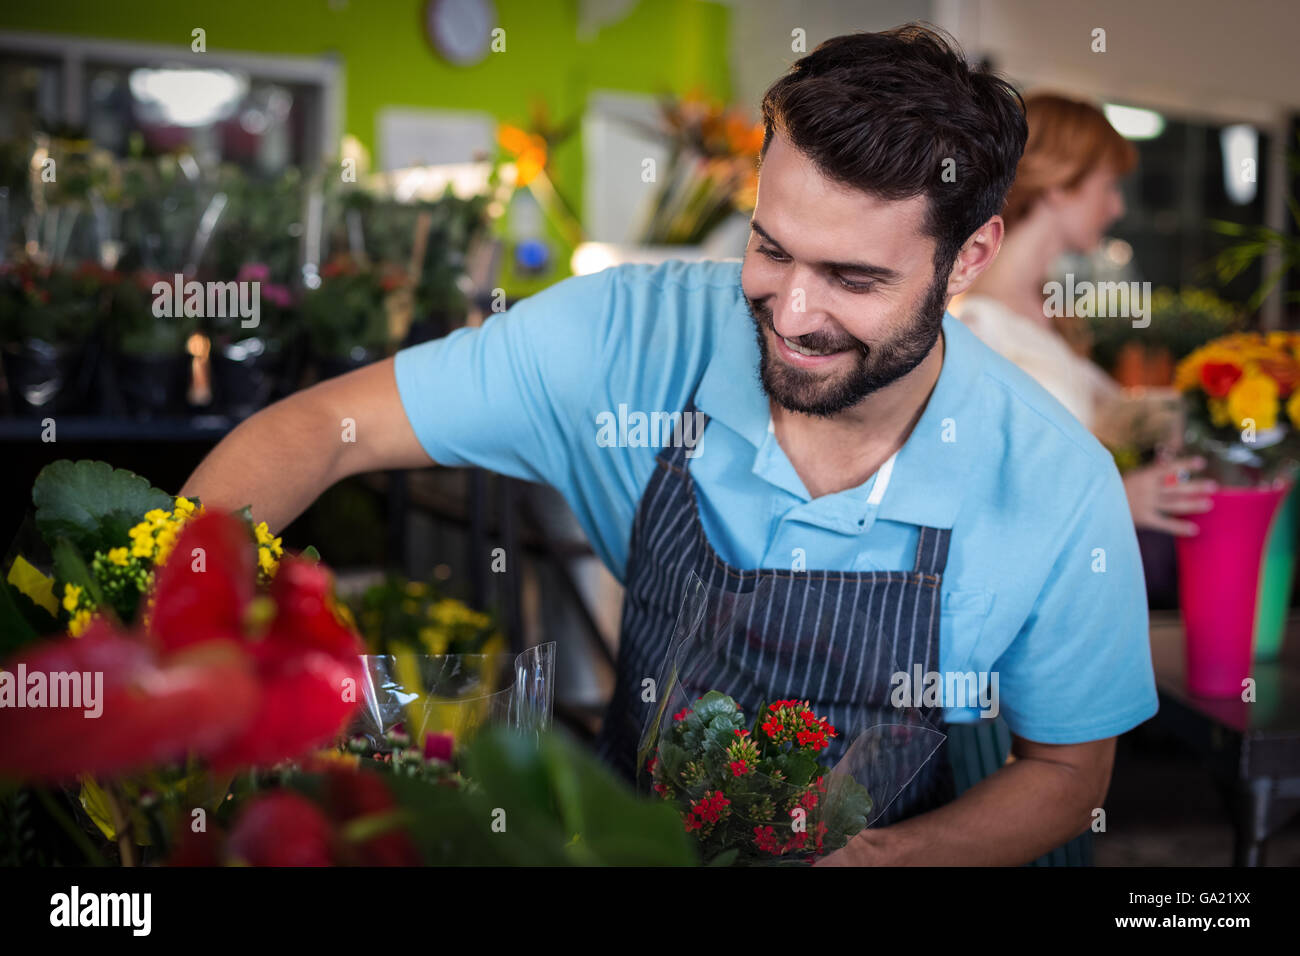 Male florist arranging flower bouquet - Stock Image